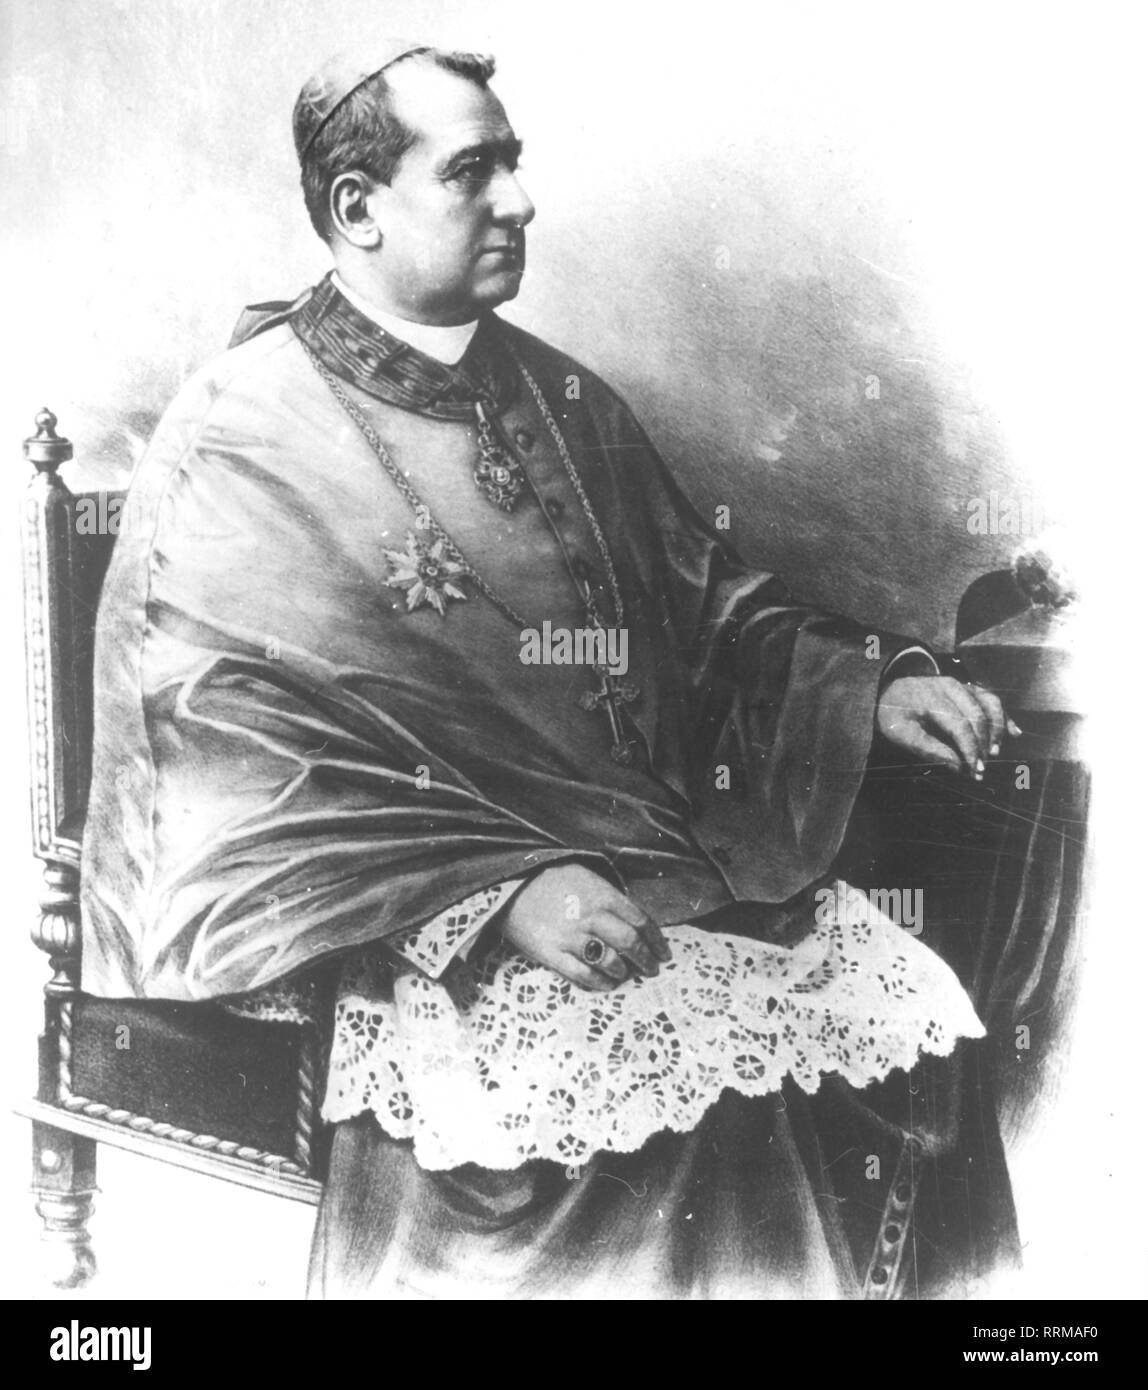 Marschall, Godfried, 1.10.1840 - 23.3.1911, Austrian clergyman, half length, circa 1900, Additional-Rights-Clearance-Info-Not-Available - Stock Image